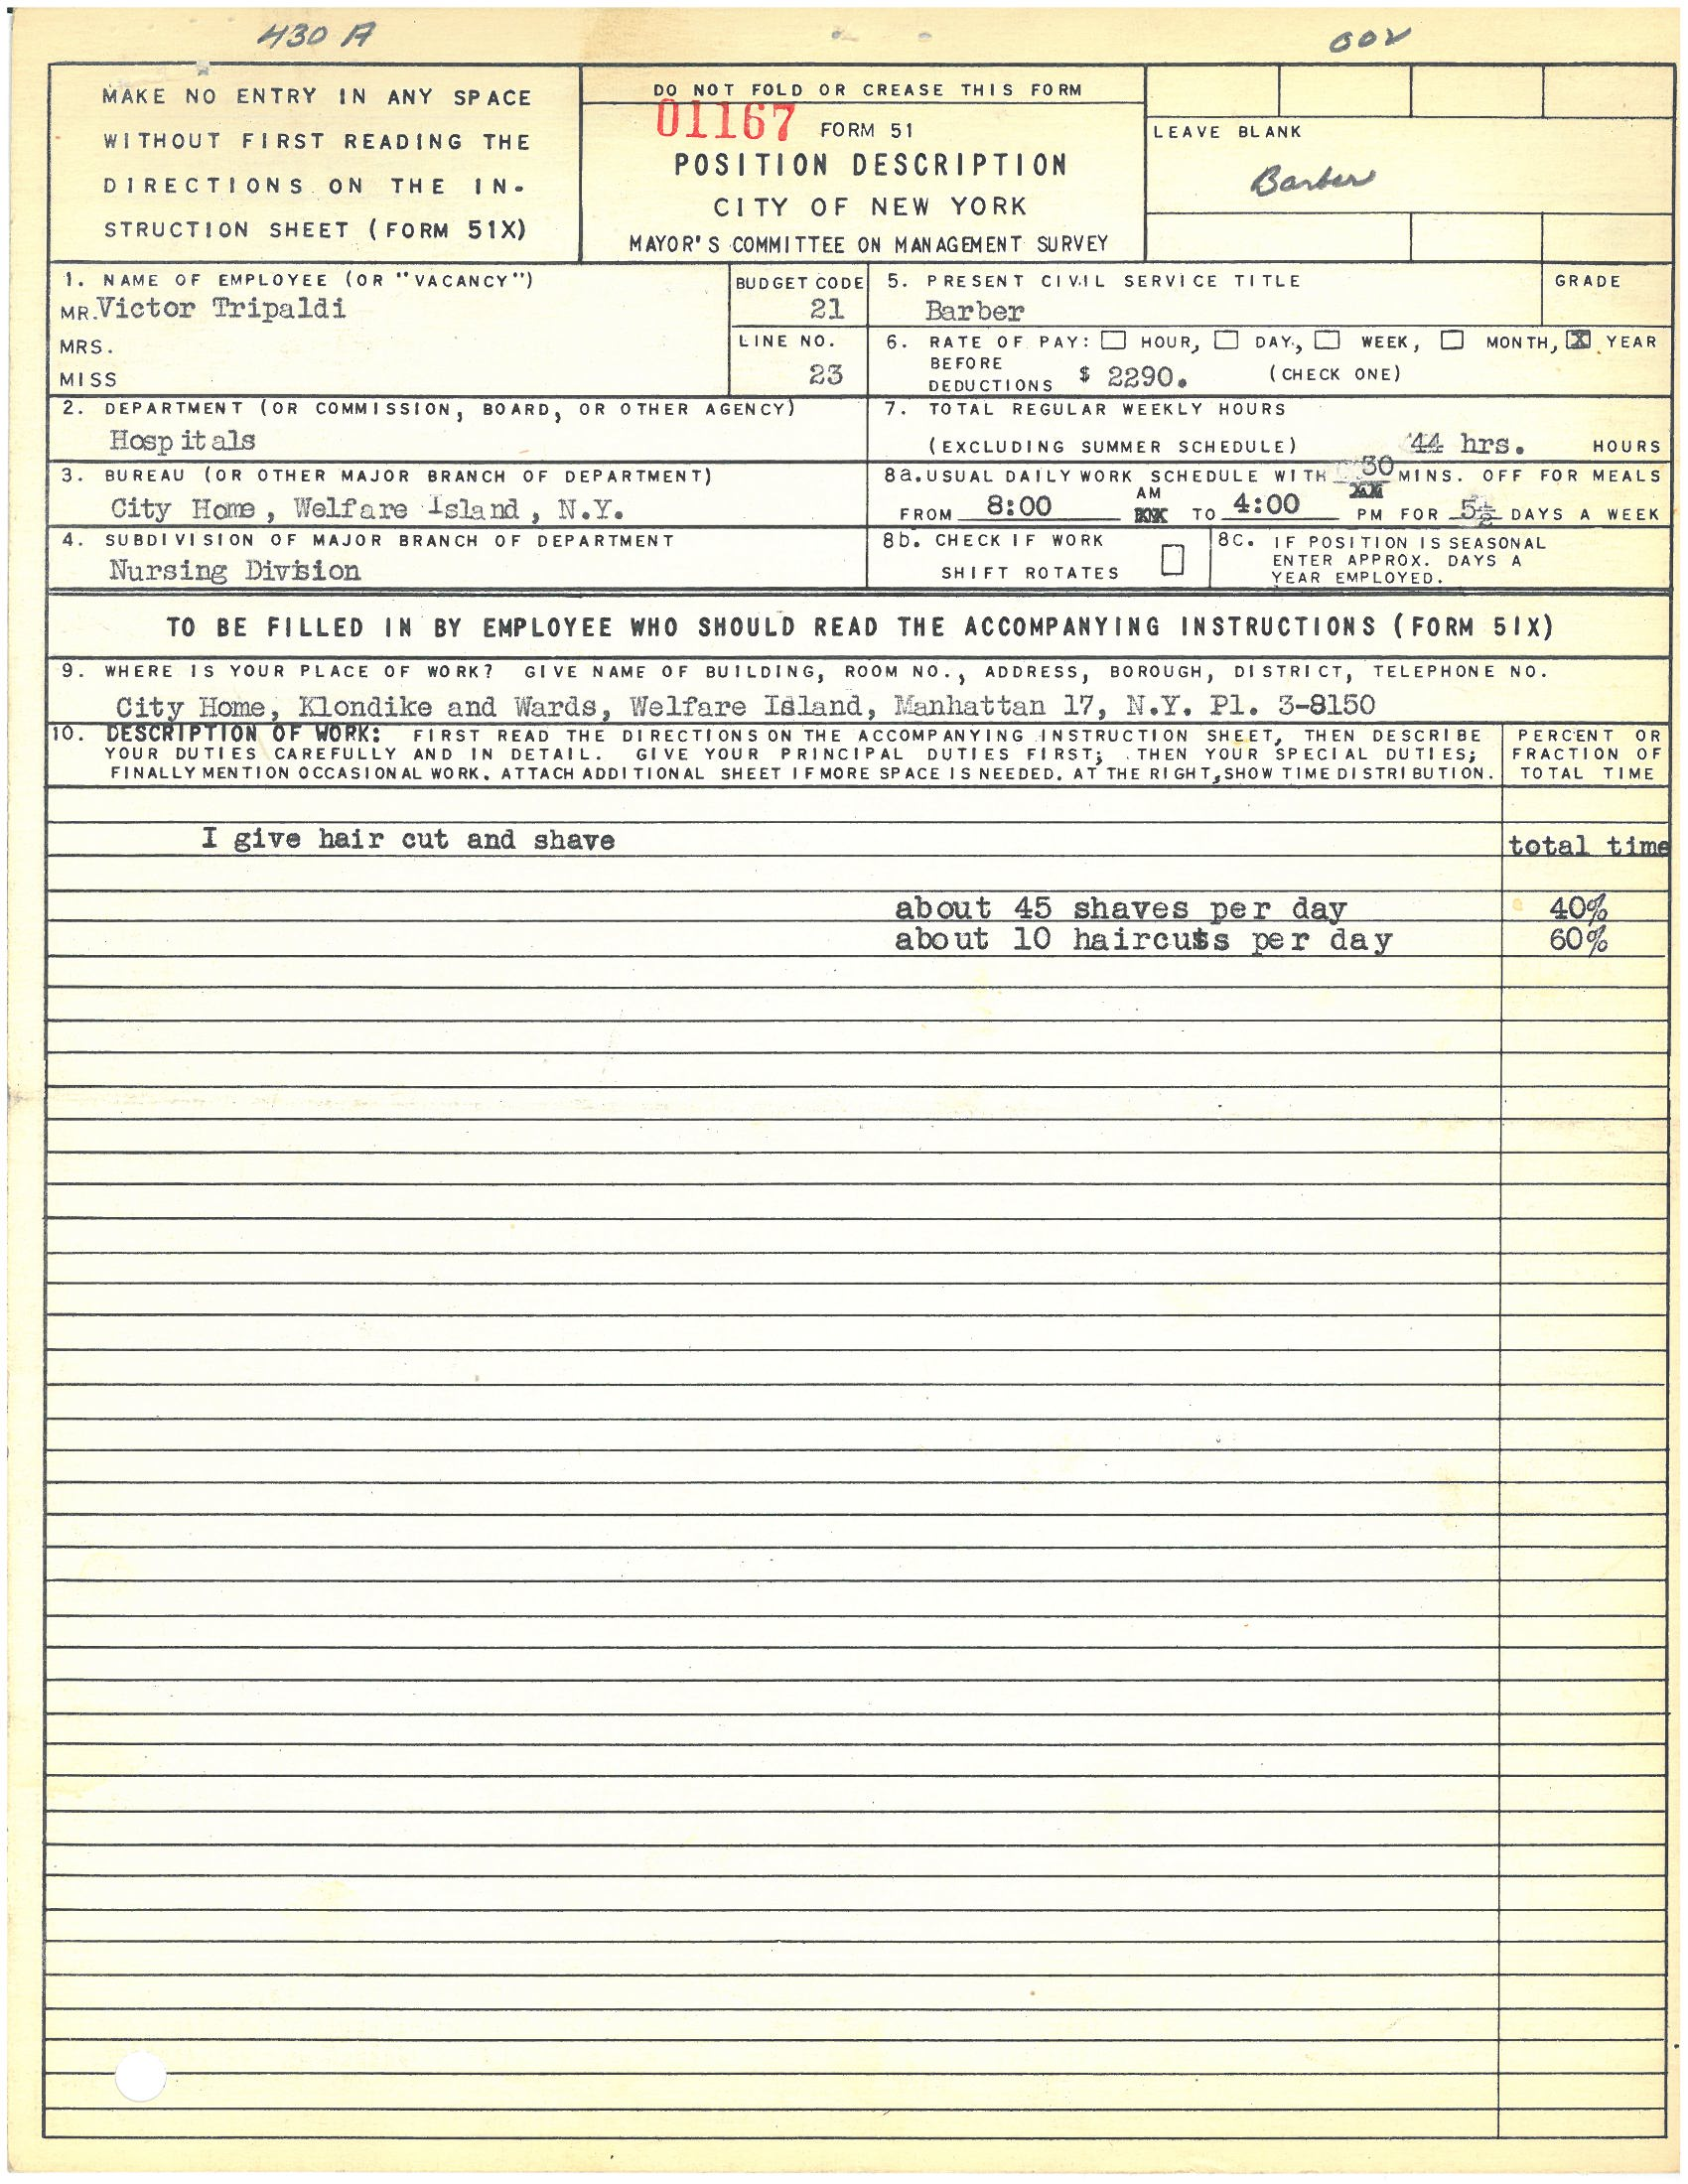 Form 51: Victor Tripoli, Barber, City Home, Welfare Island. Mayor's Committee on Management Survey, circa 1950. NYC Municipal Archives.